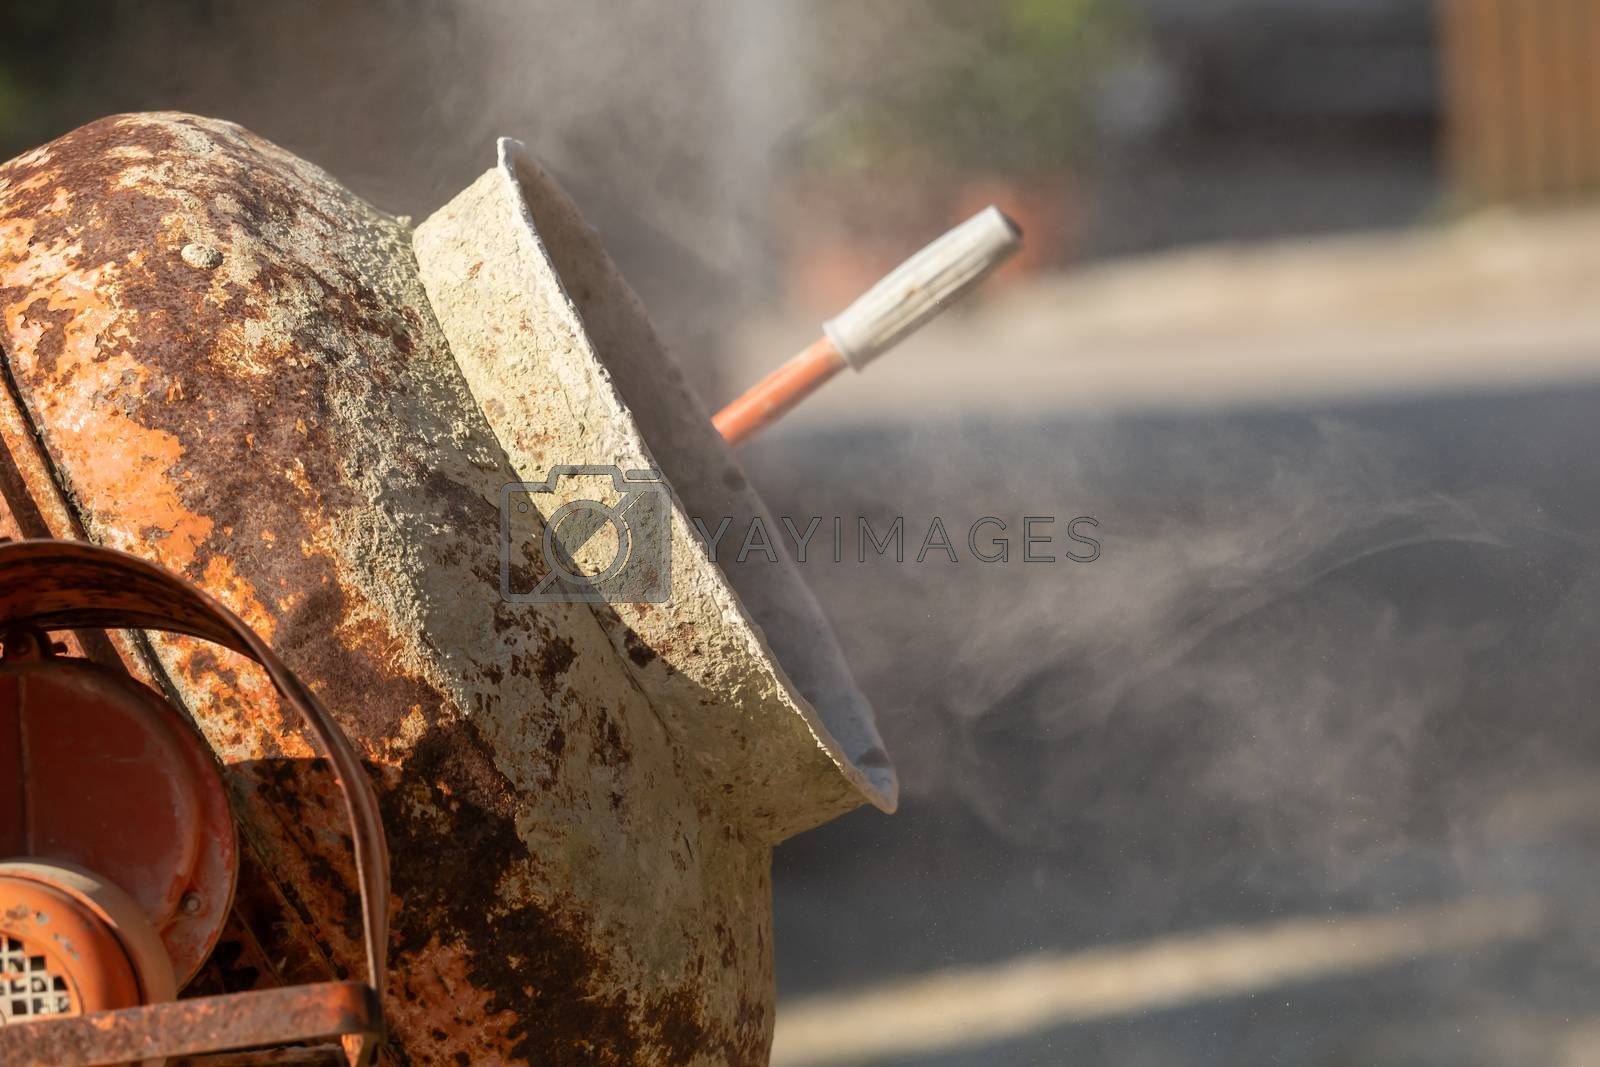 Construction site work with concrete mixer and wheelbarrows by Sandra Fotodesign